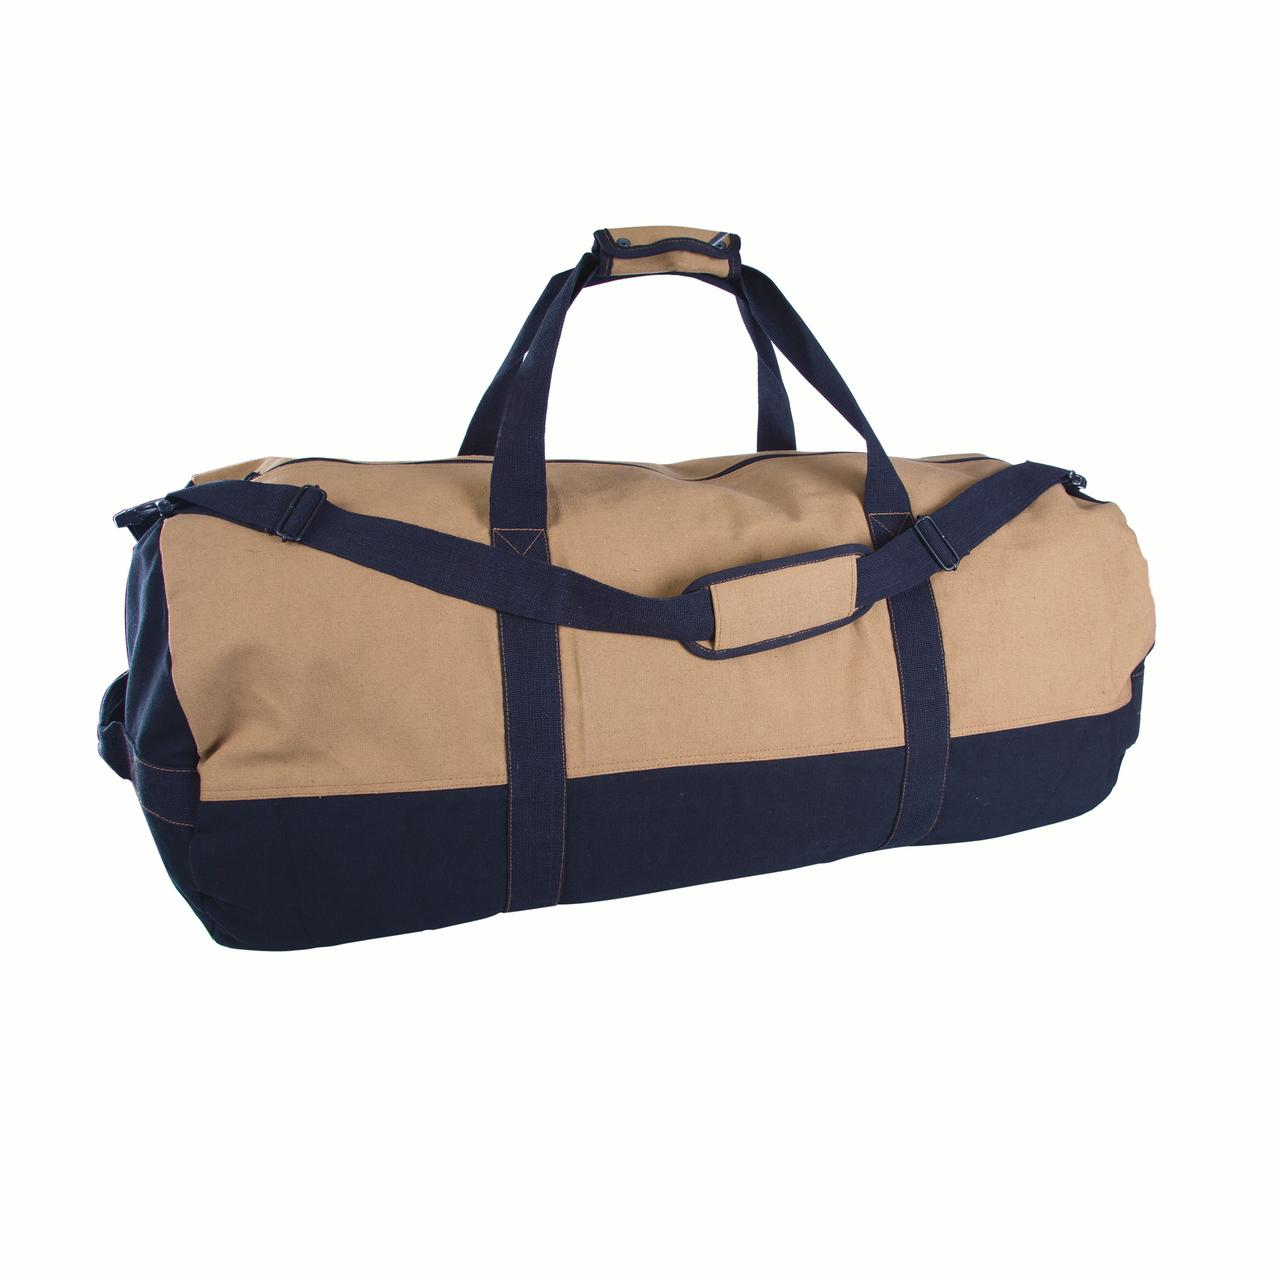 """Stansport Duffle Bag With Zipper - 2 Tone - 18"""" x 36"""